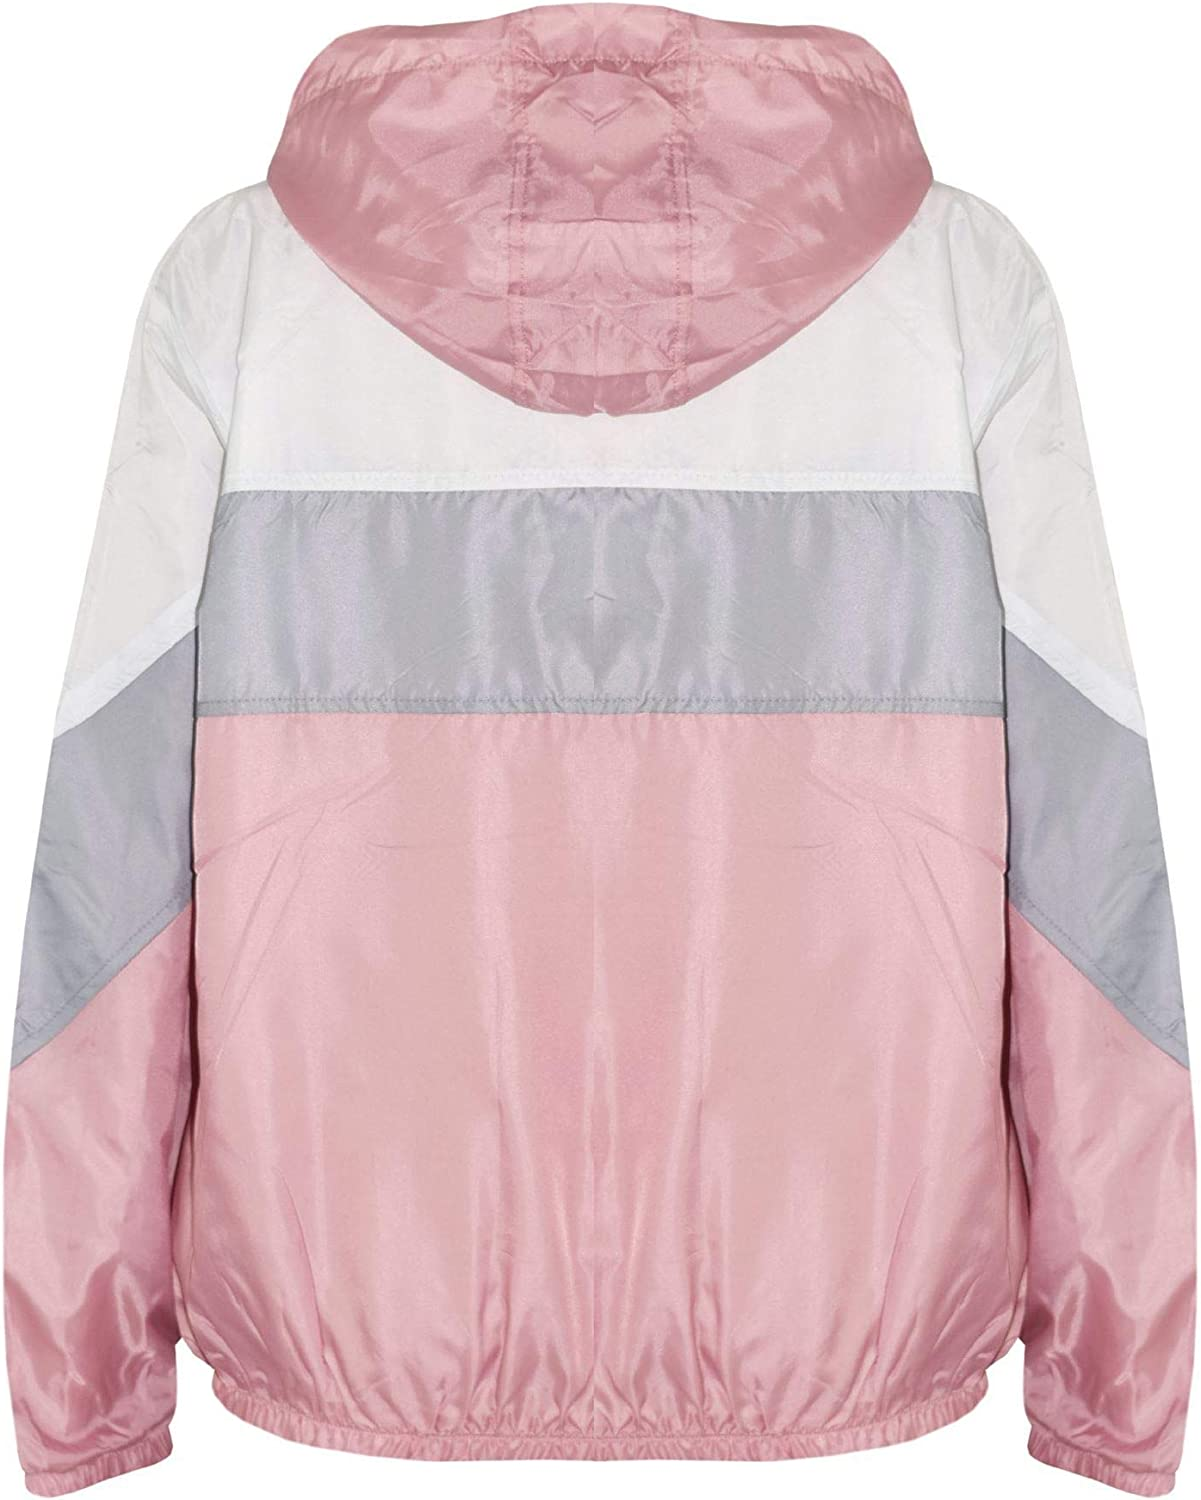 A2Z 4 Kids/® Girls Boys Windbreaker Jackets Kids Baby Pink Light Weight Contrast Panels Waterproof Hooded Cagoule Rain Mac Raincoats Age 5 6 7 8 9 10 11 12 13 Years